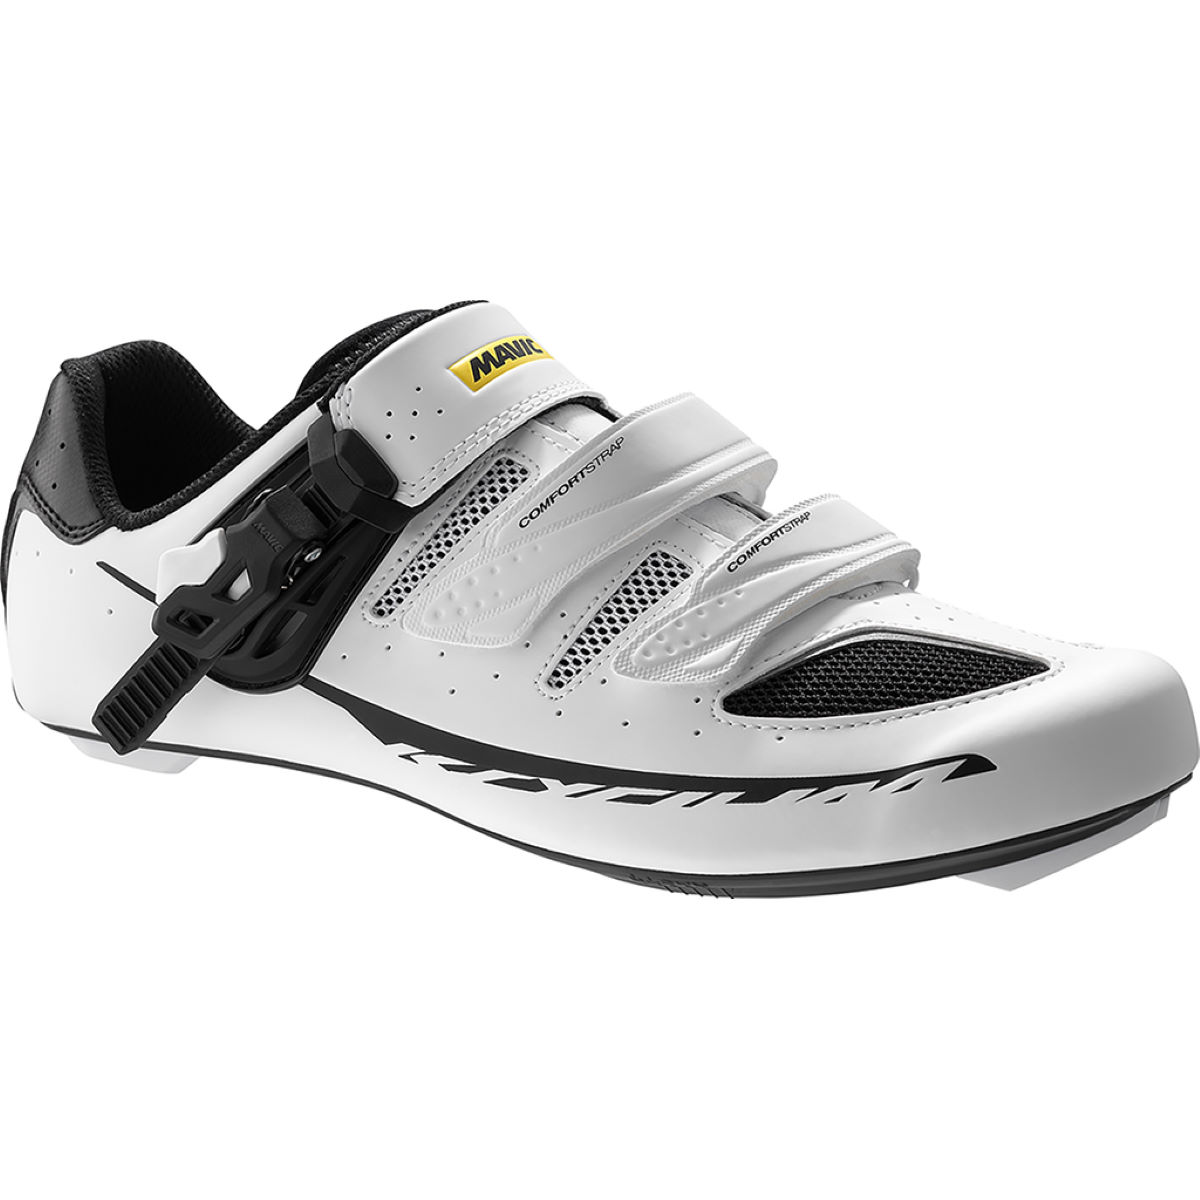 Chaussures Mavic Ksyrium Elite Maxi Fit II - 8,5 UK Blanc Chaussures de route